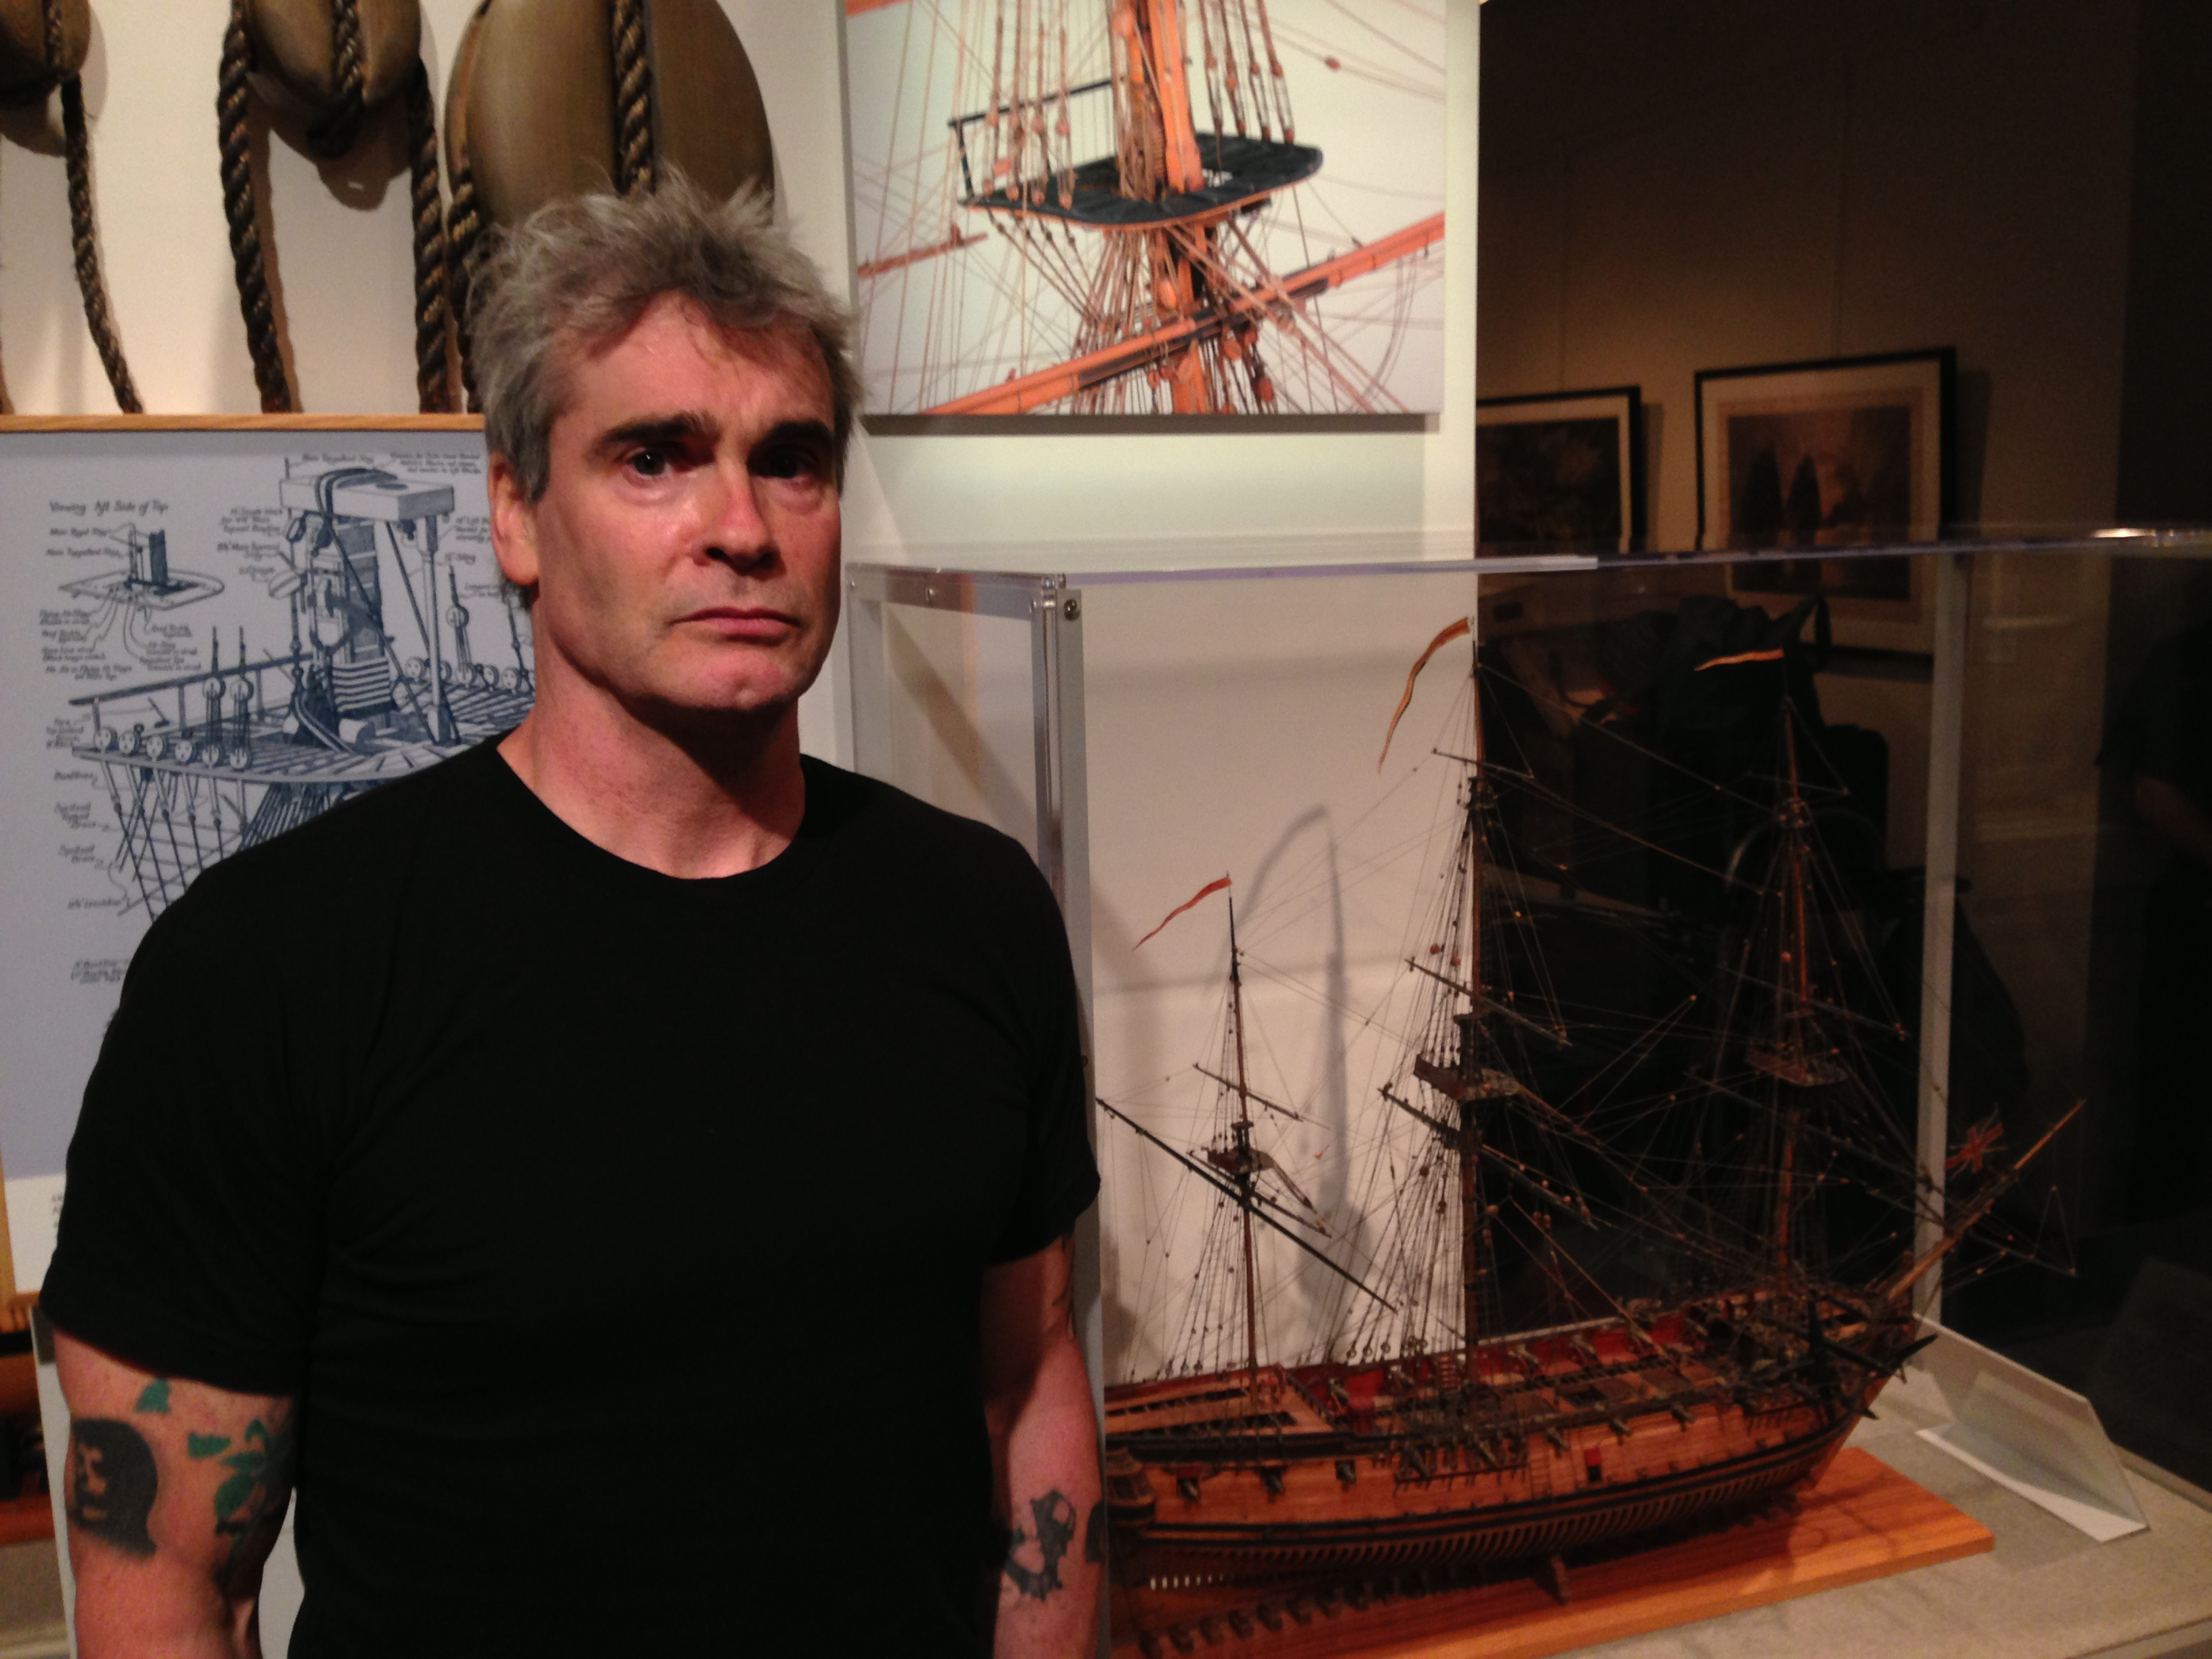 WEBCAST: A Conversation With Henry Rollins Streaming Live From SXSW ...